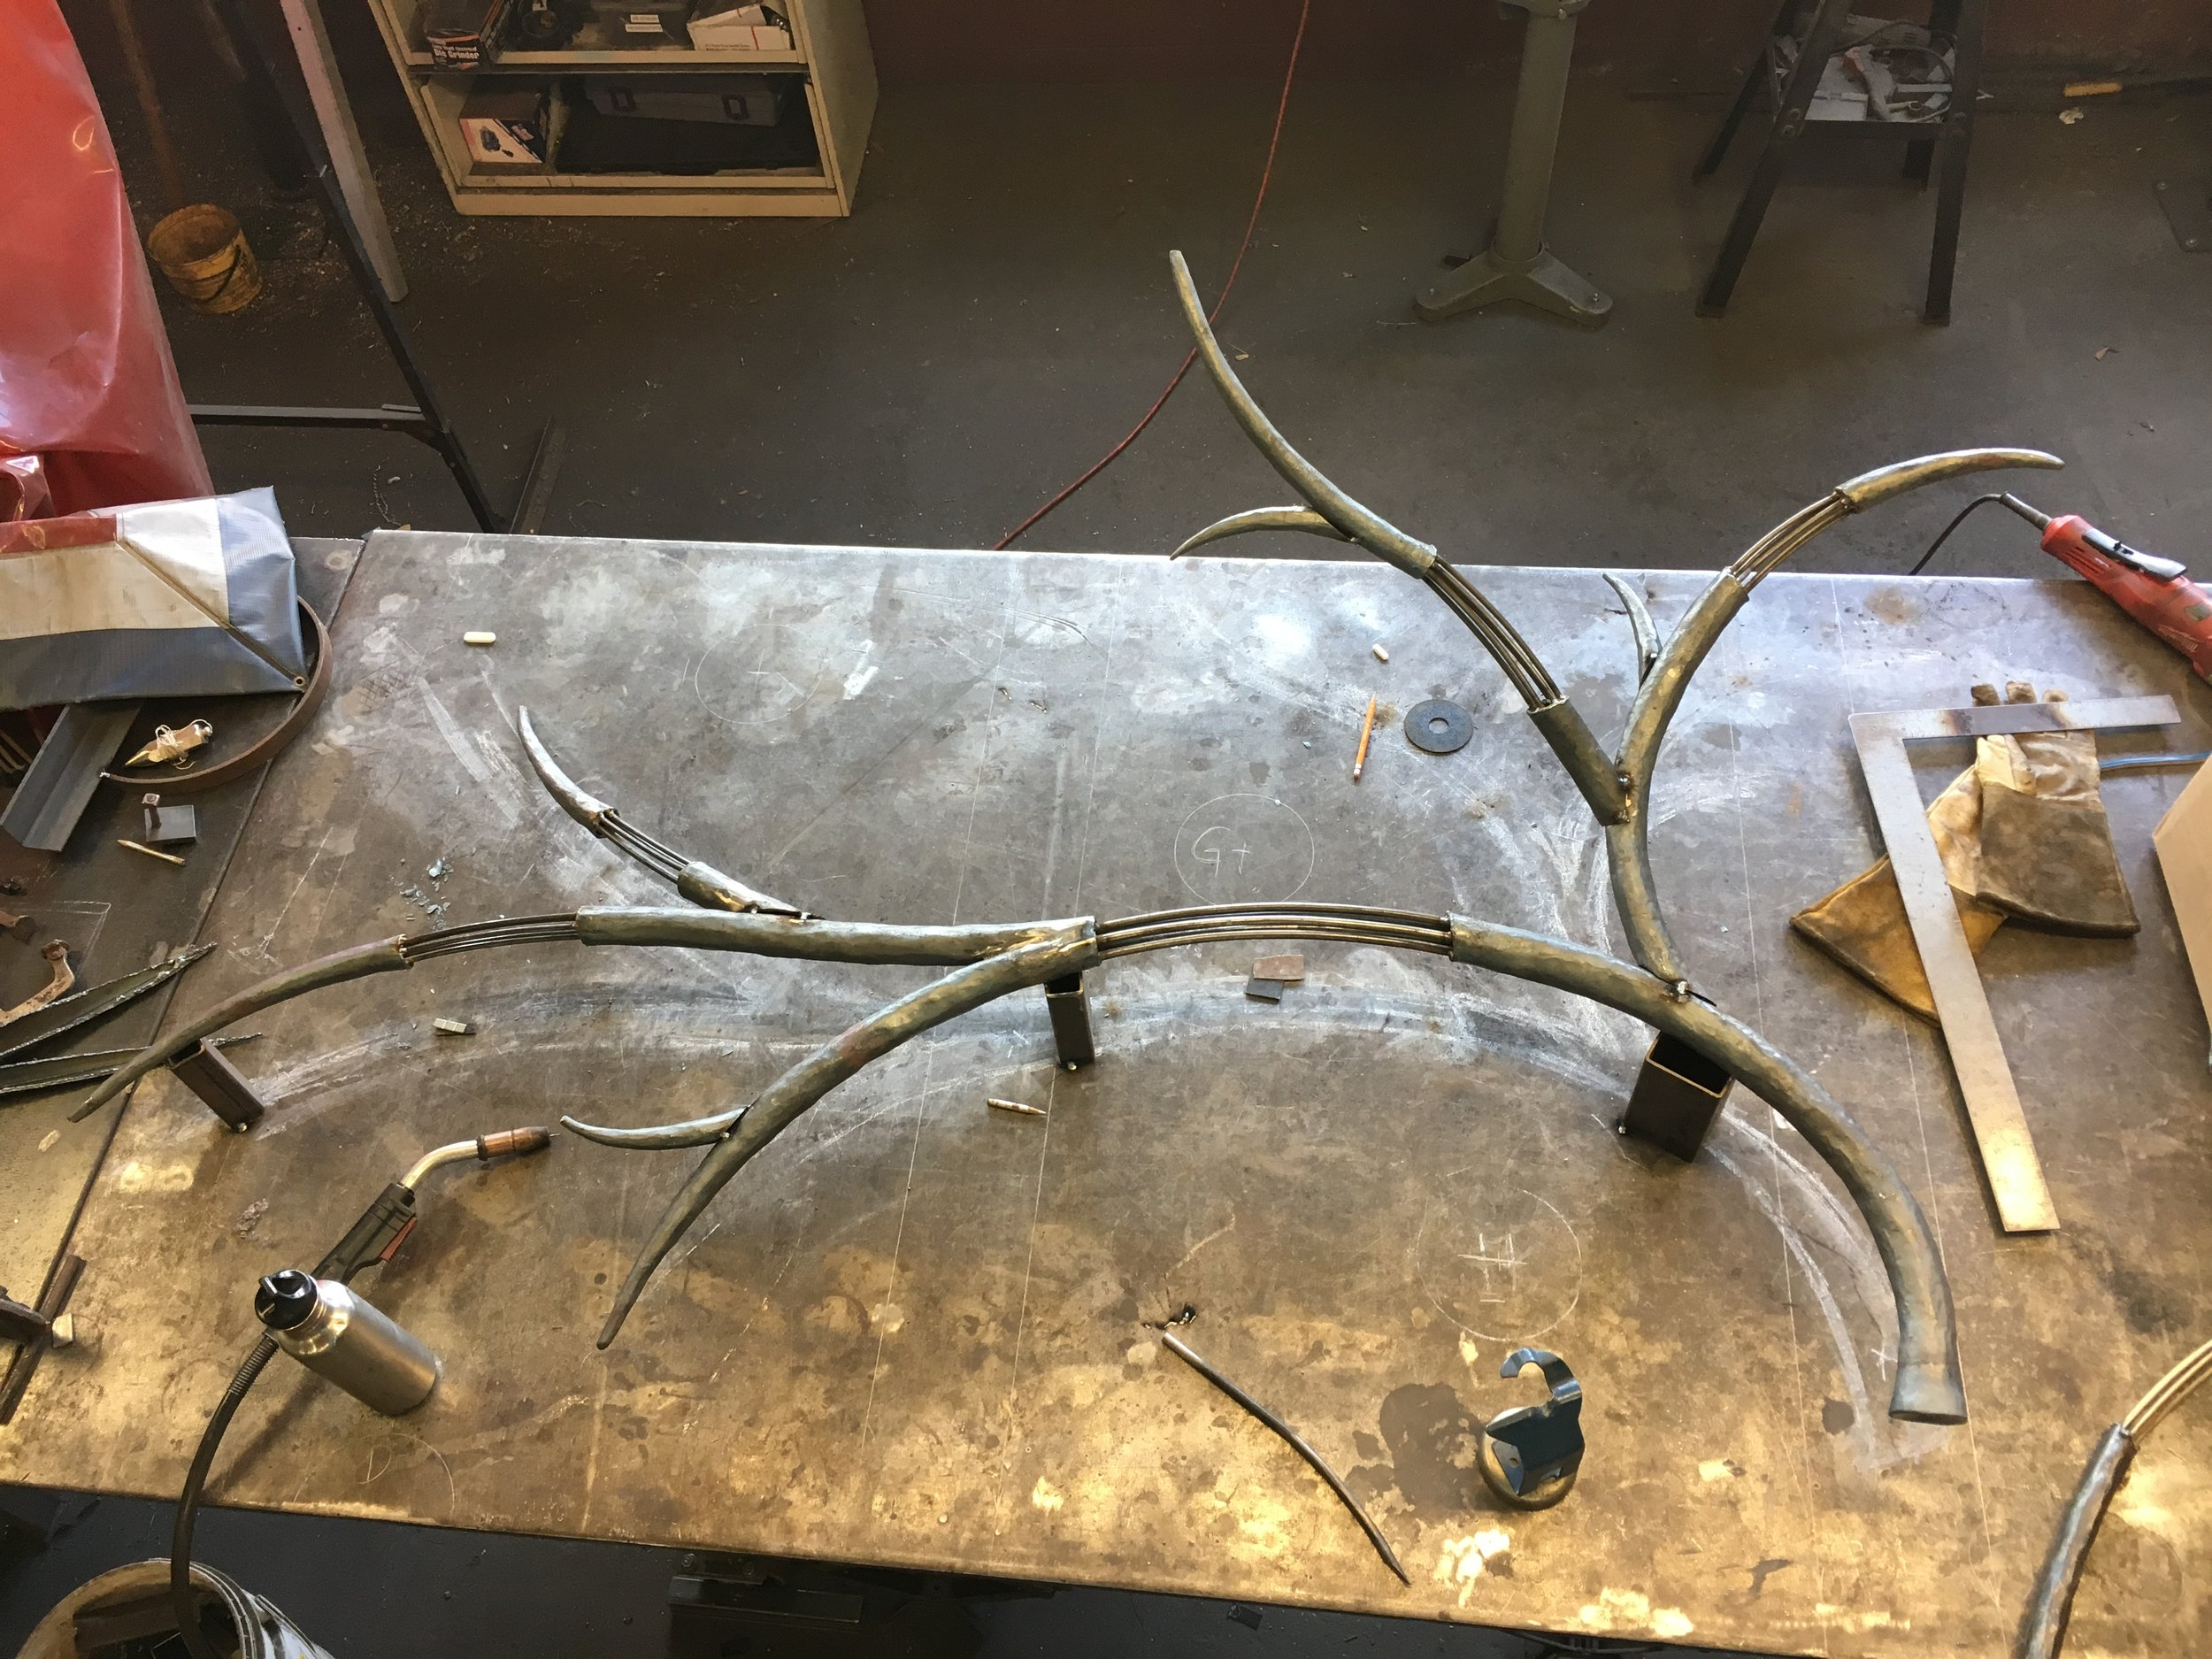 Putting the forged chandelier elements together in the studio